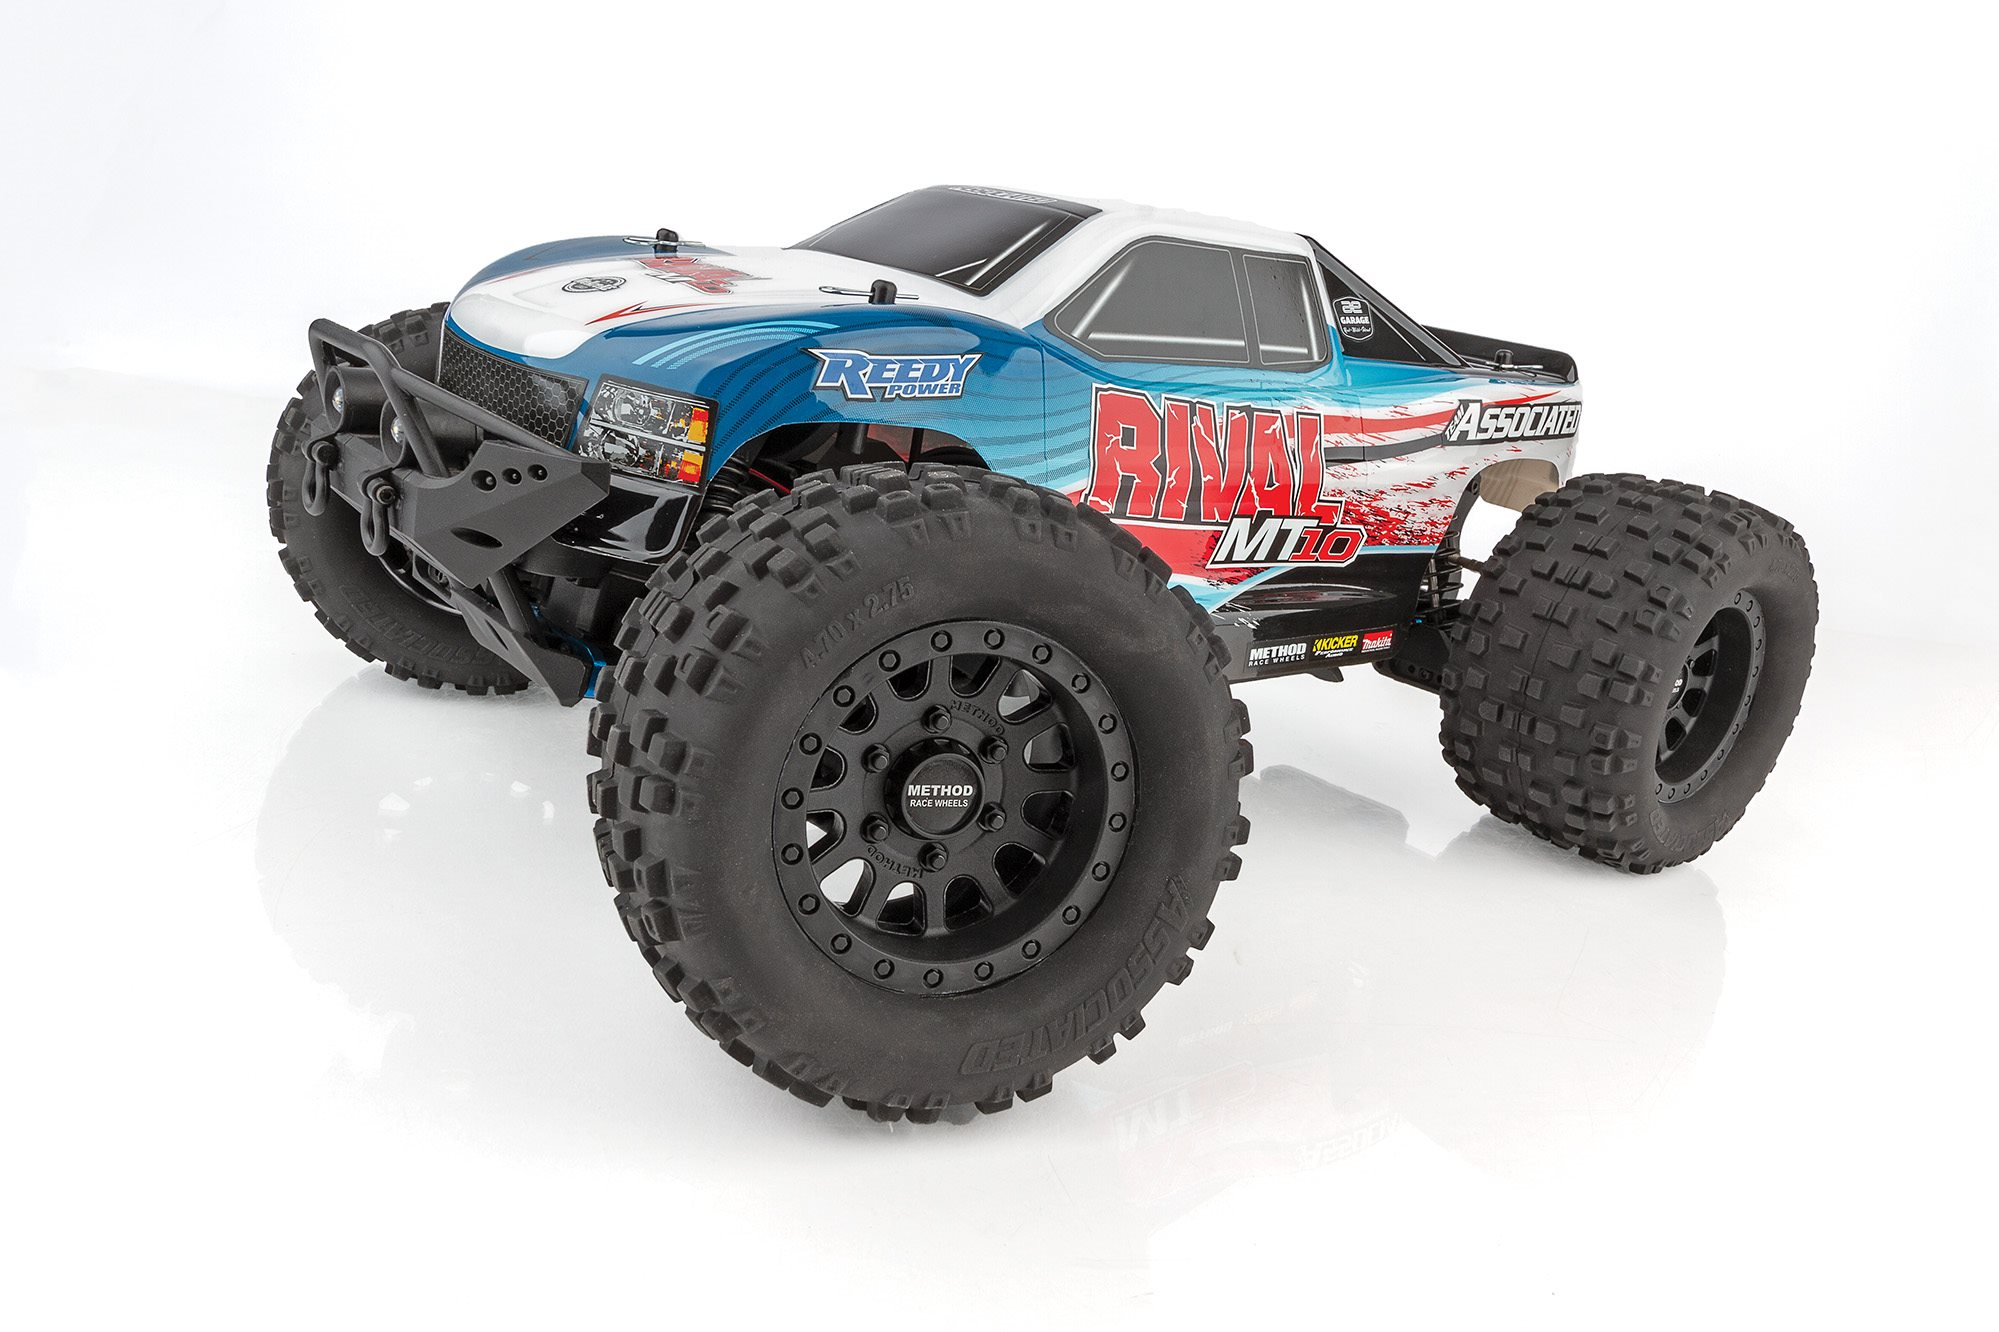 Associated Rival Mt10 1/10 Scale Off-Road Electric 4Wd Rtr